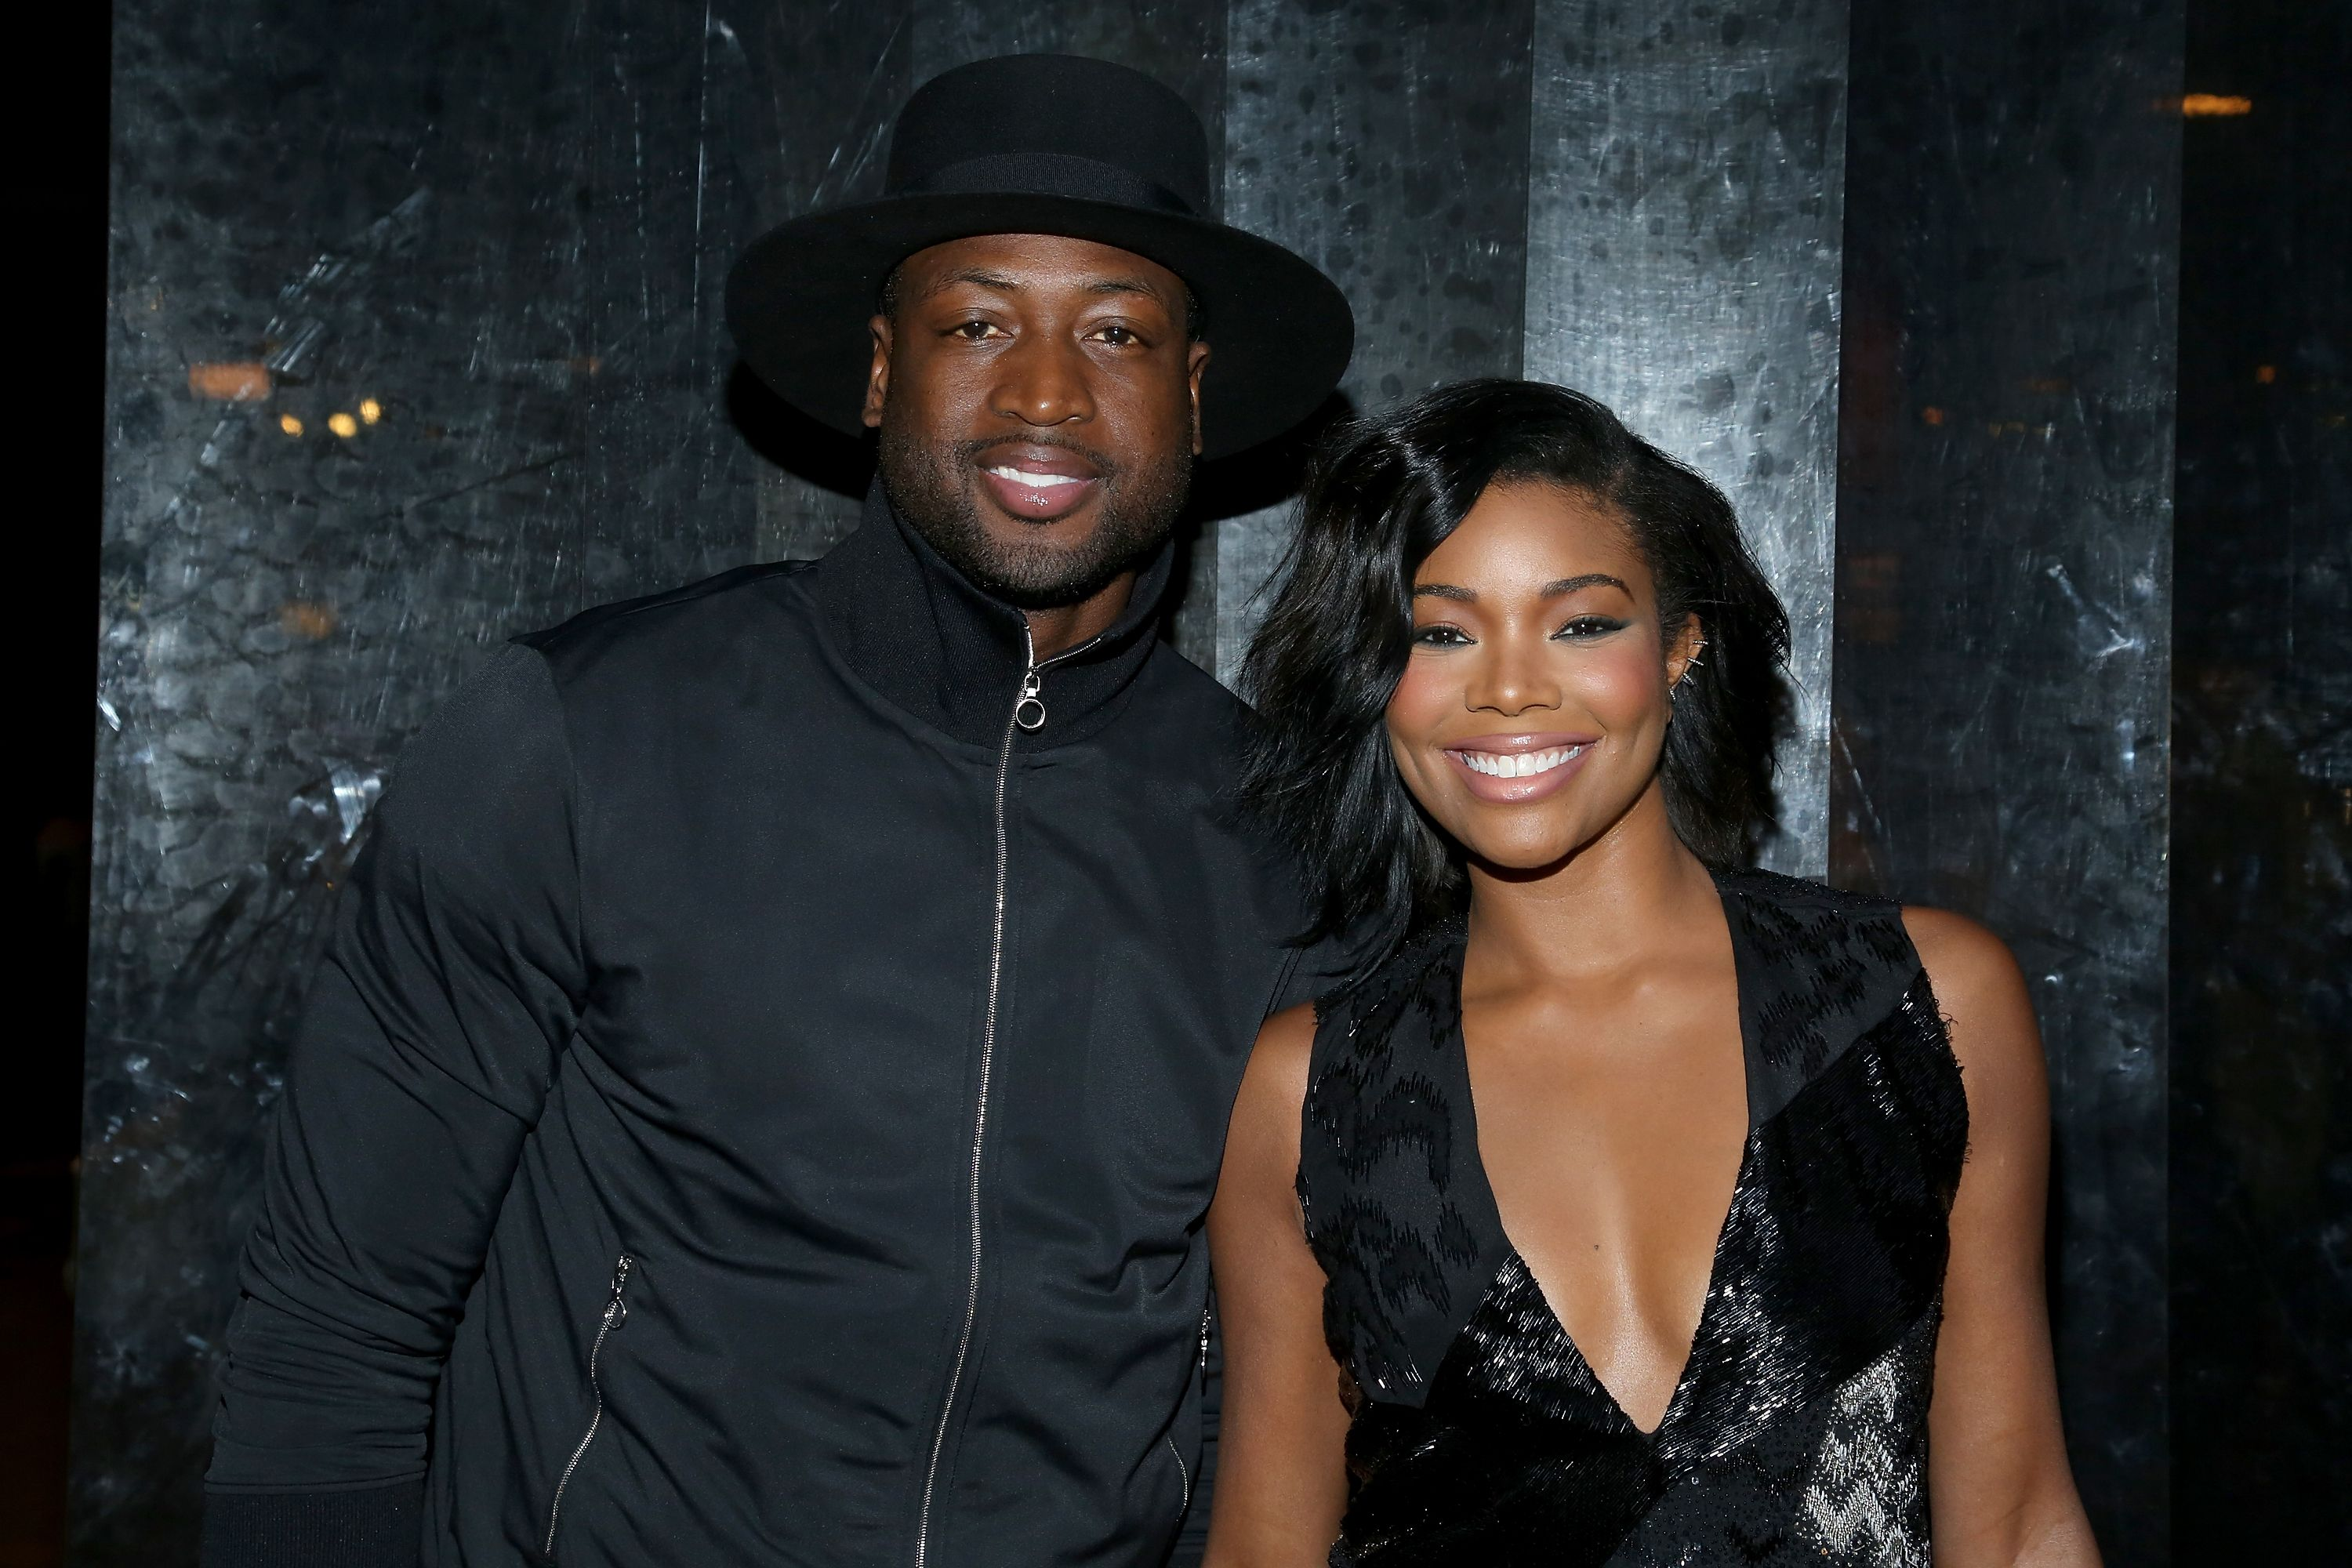 Gabrielle Union and Dwyane Wade at New York Fashion Week on September 13, 2015 in New York City. | Source: Getty Images